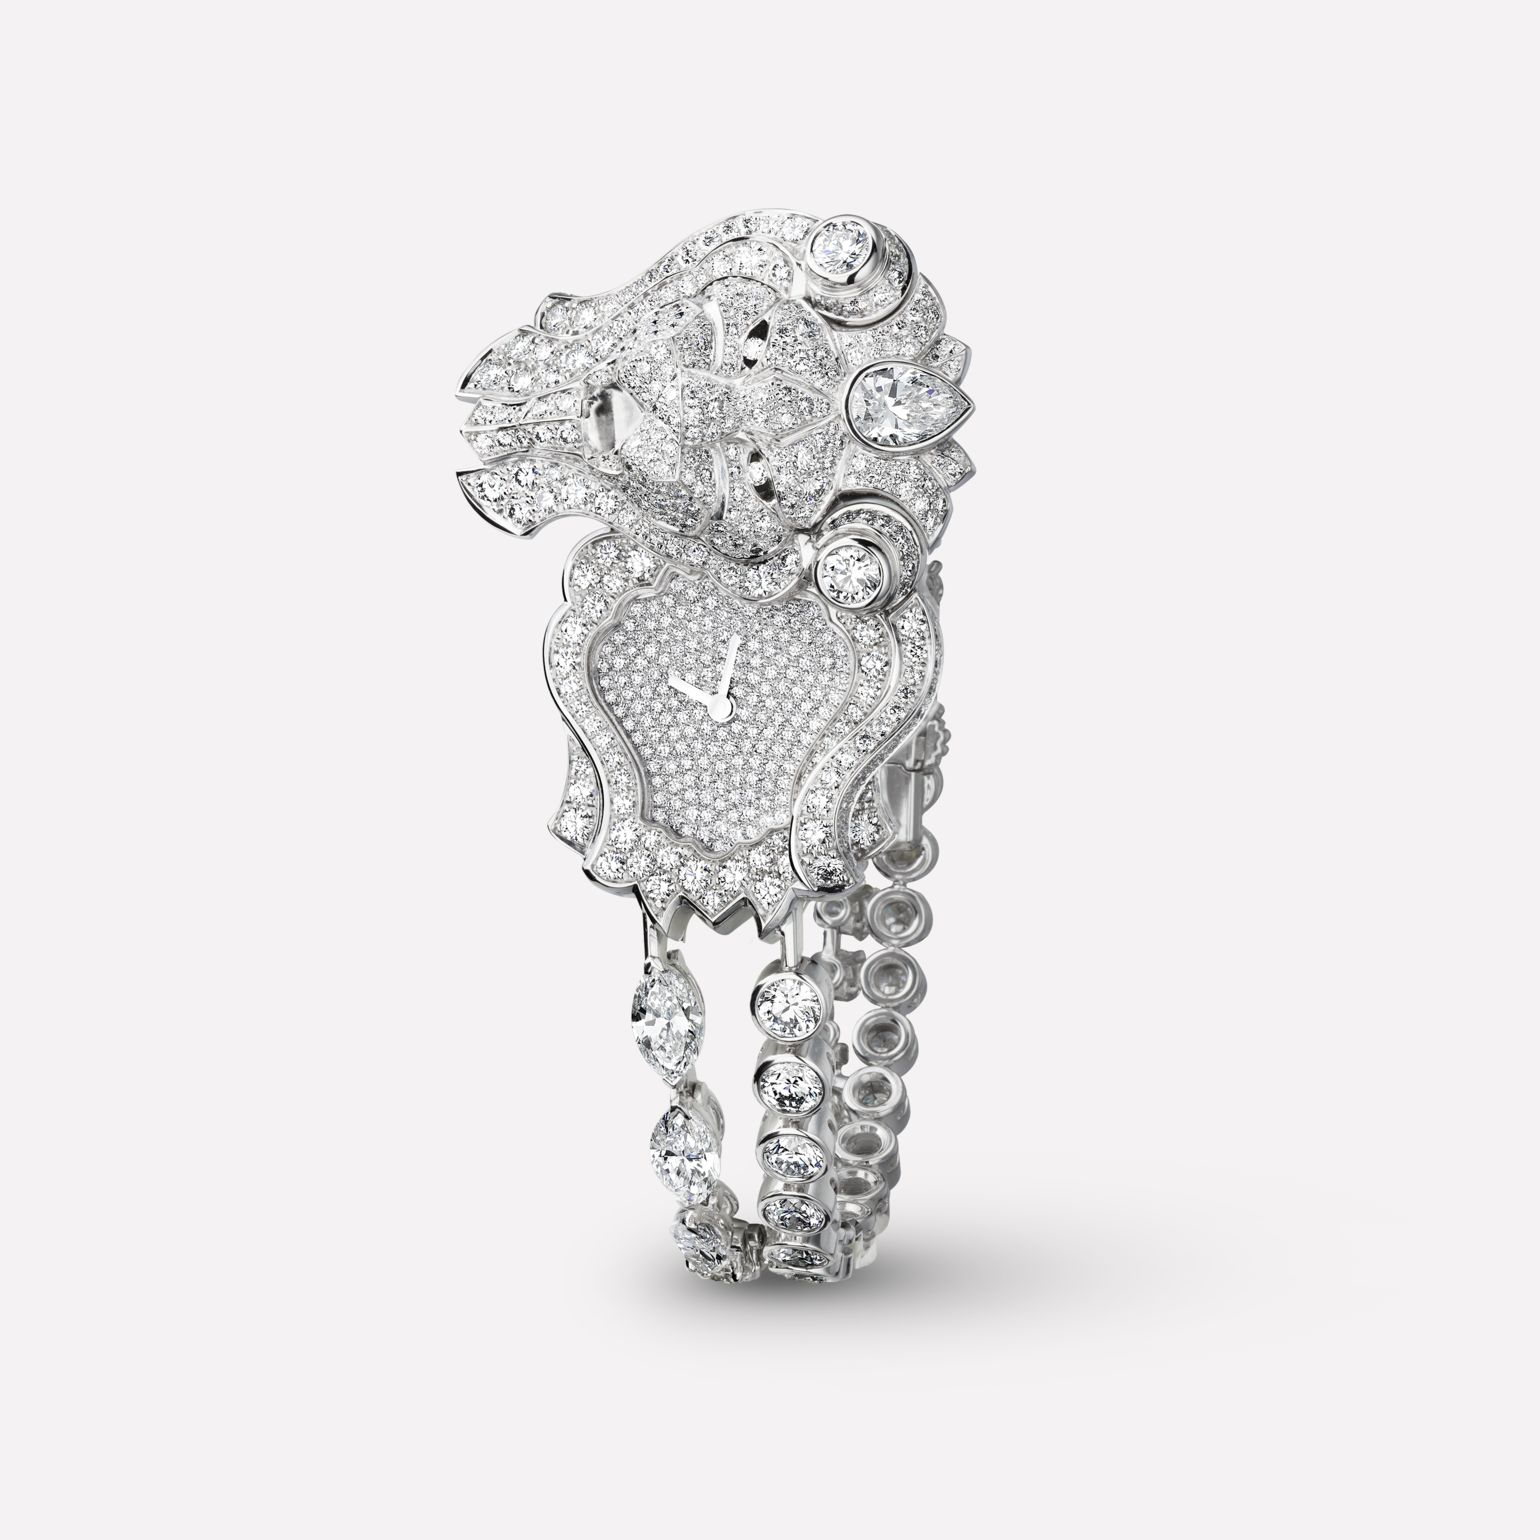 Sous le Signe du Lion Jewelry Watch Secret watch with lion motif in 18K white gold, and diamonds with diamond bracelet